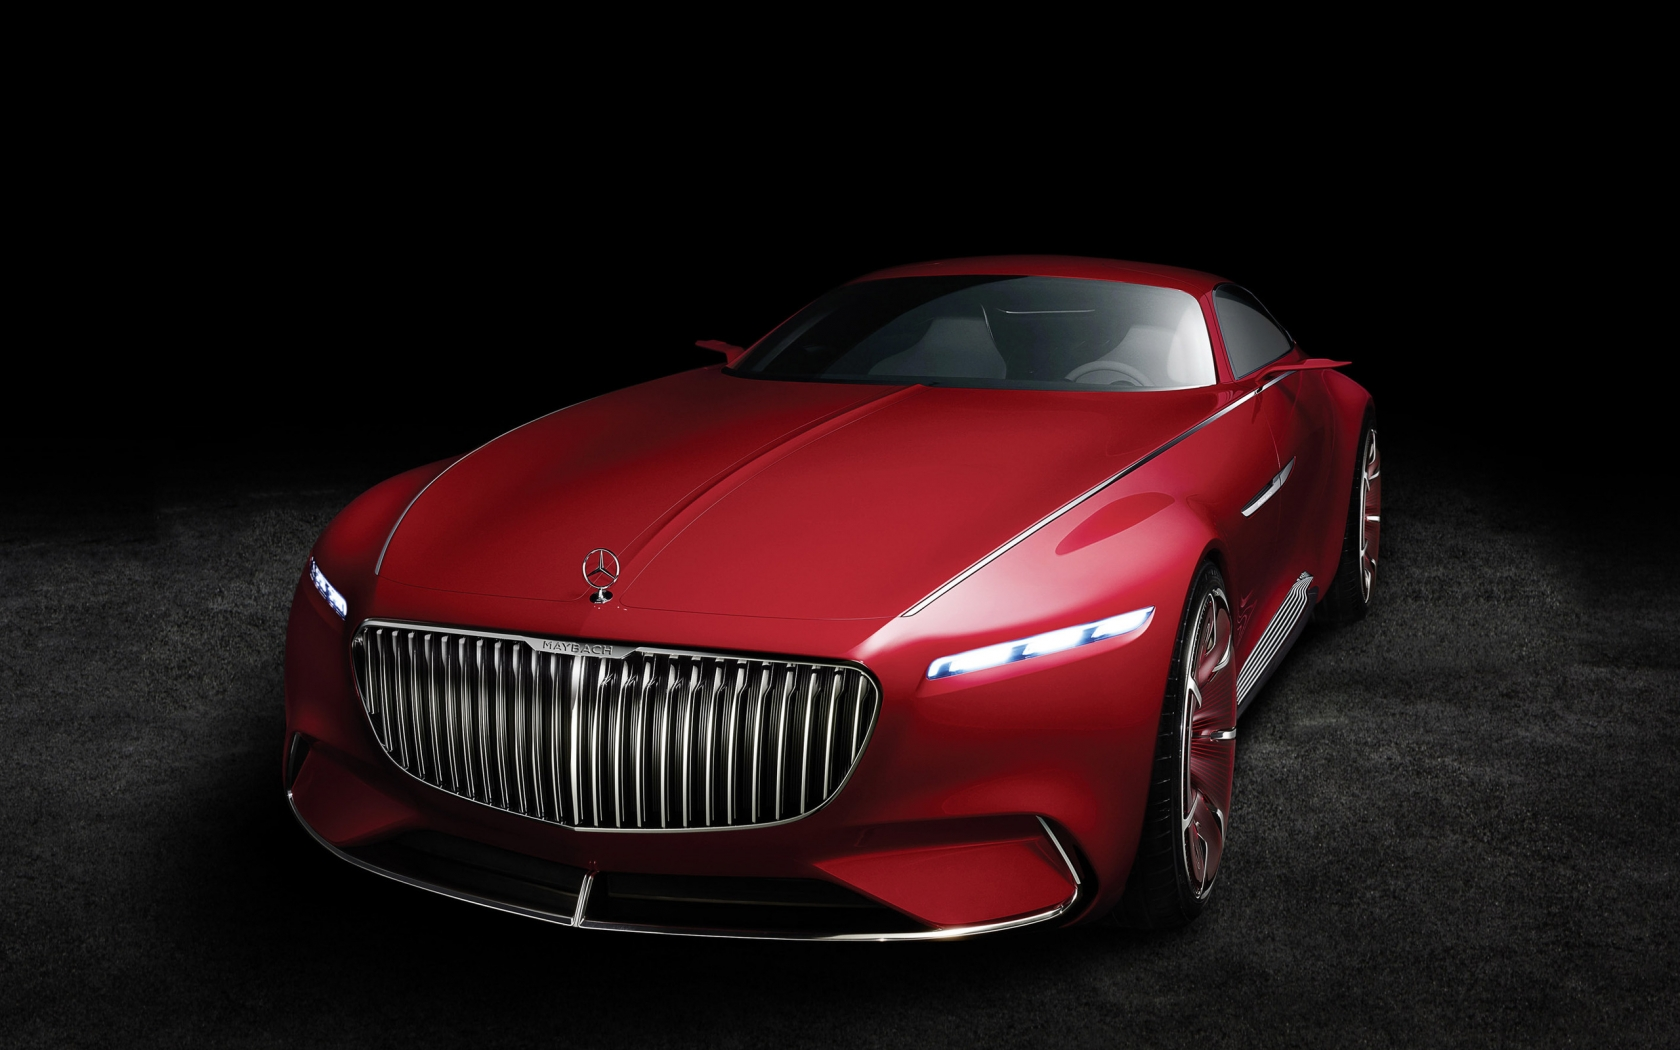 2016 Vision Mercedes Maybach 6 for 1680 x 1050 widescreen resolution